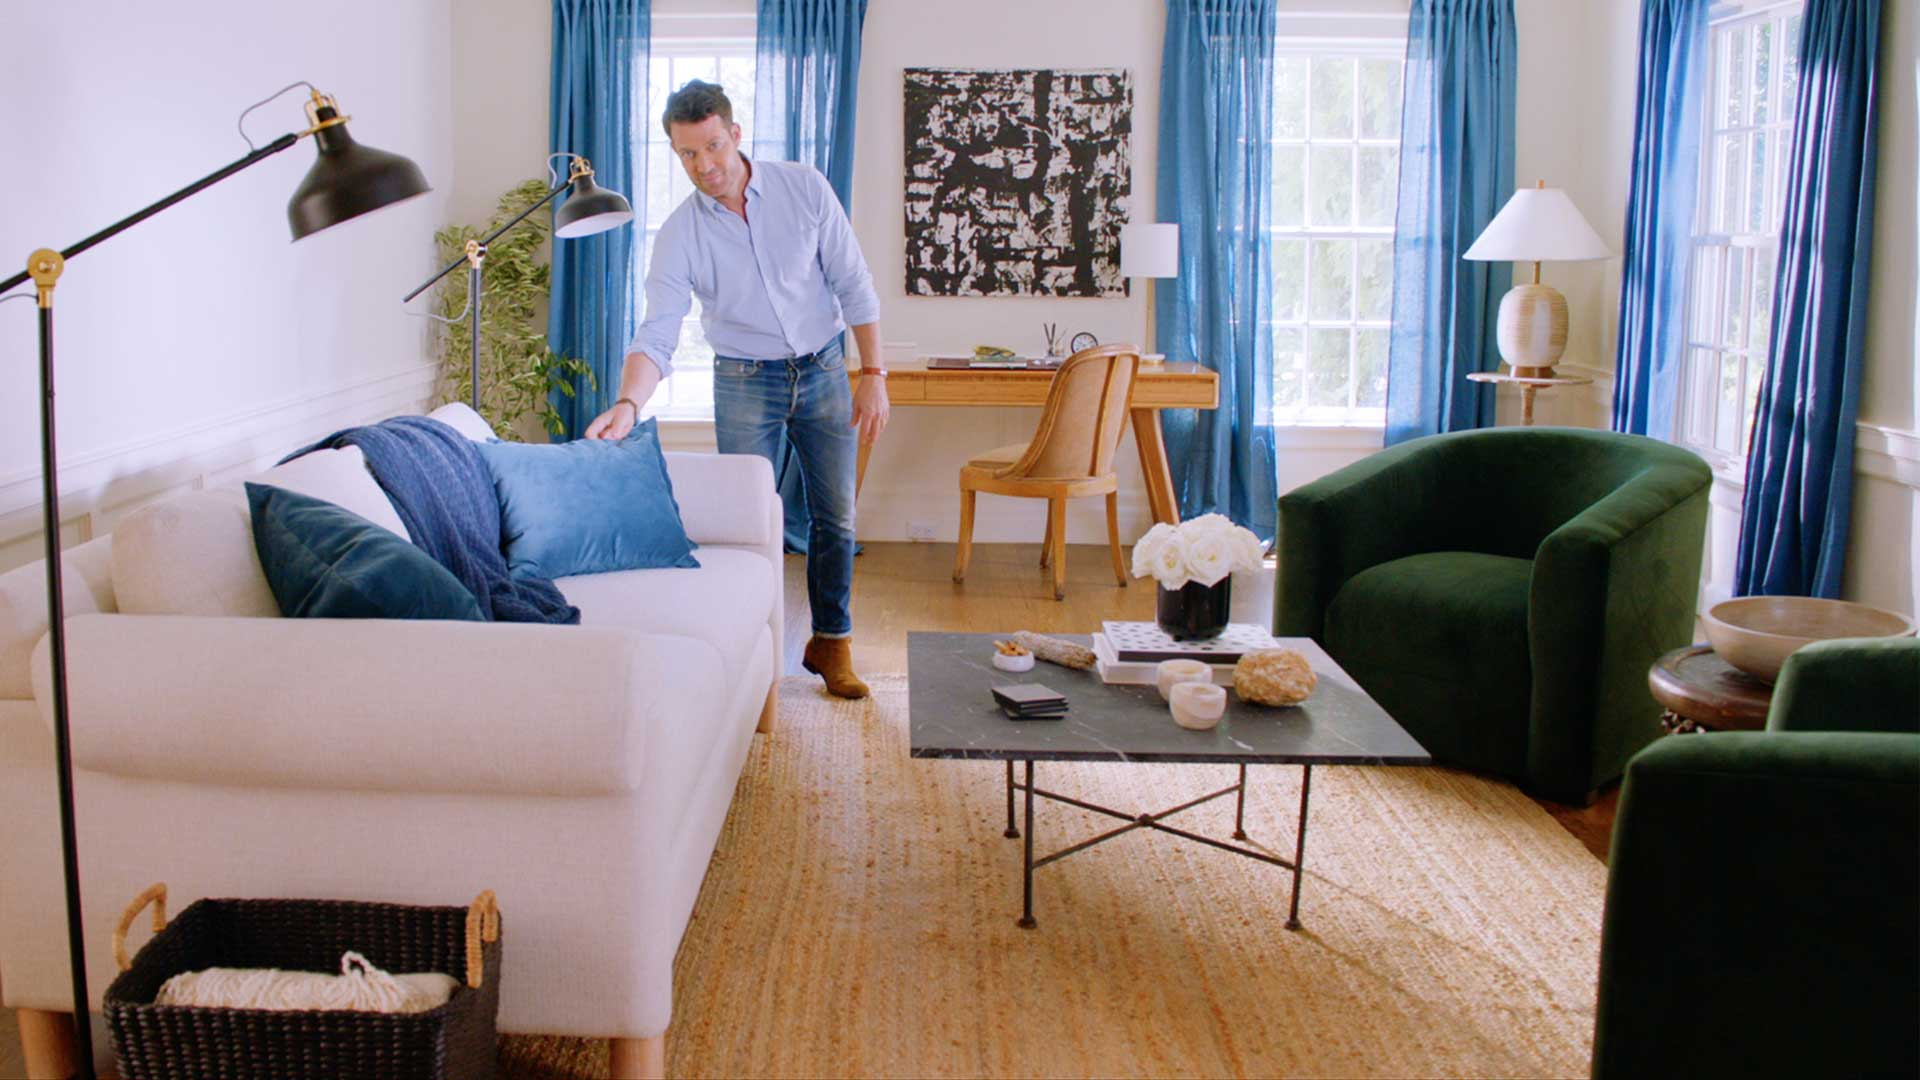 Nate Berkus fixing up a blue pillow on a couch in a living room.